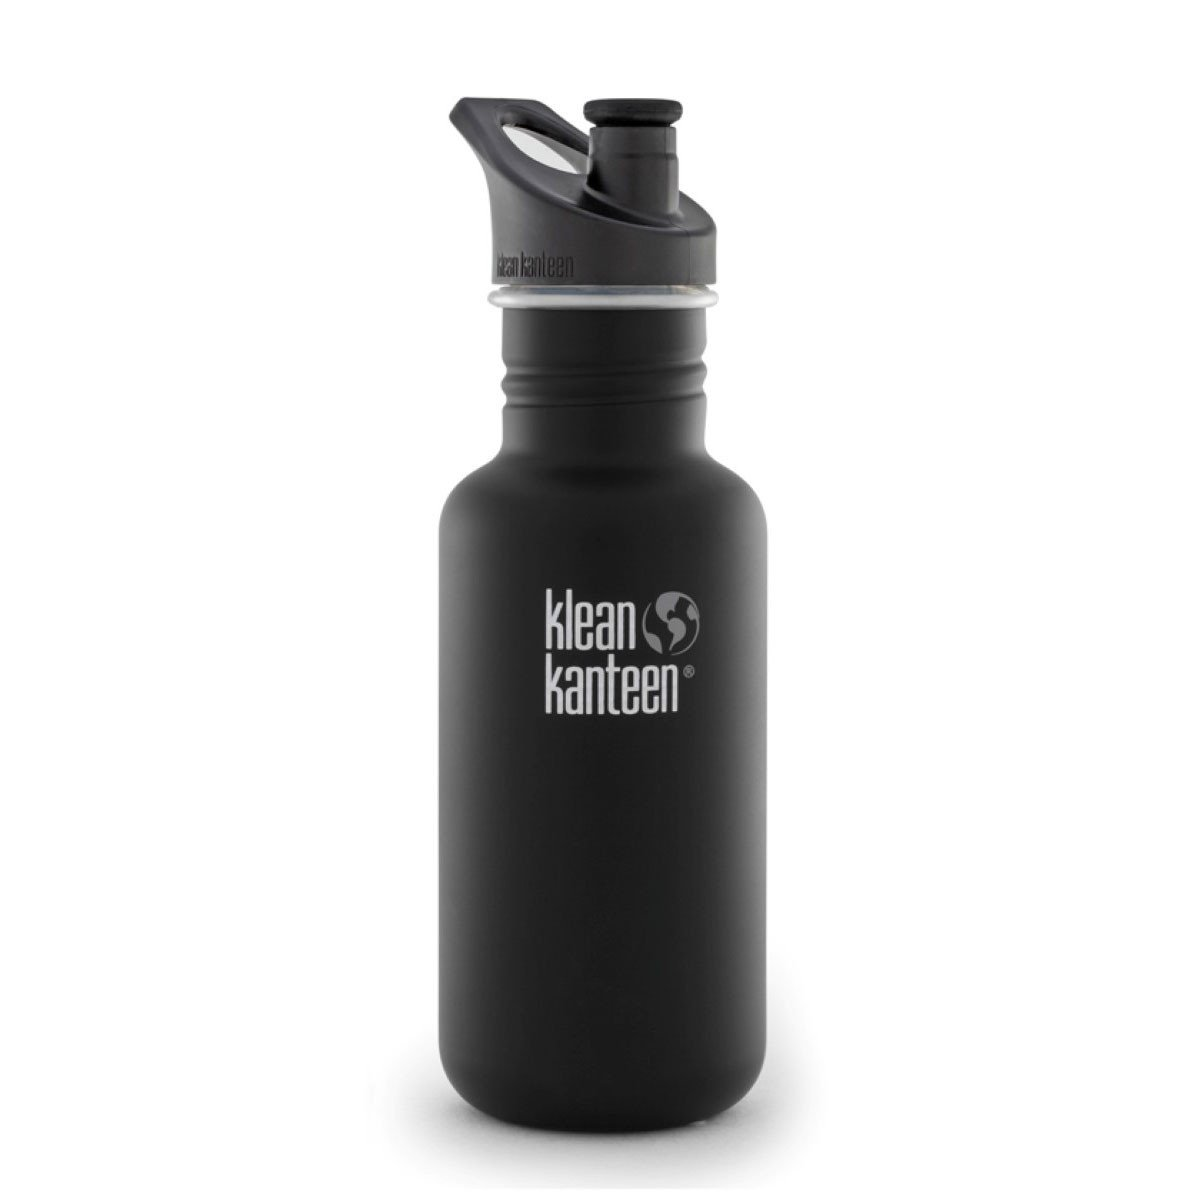 Klean Kanteen Stainless Steel Classic Water Bottle Klean Kanteen Water Bottles 532ml 18oz / Shale Black at Little Earth Nest Eco Shop